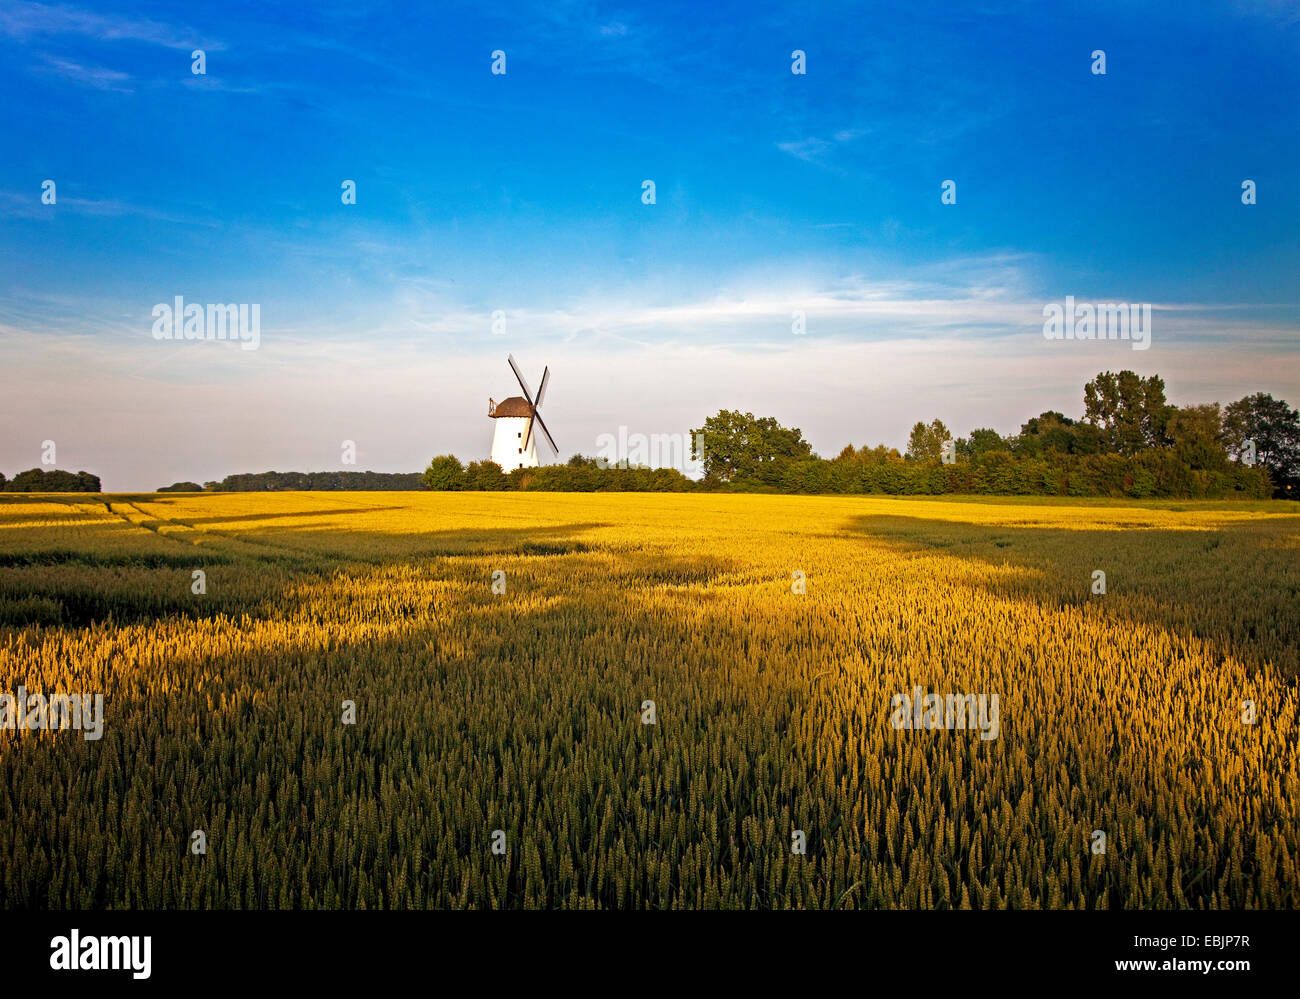 wind mill of Schmerlecke with wheat field in evening light, Germany, North Rhine-Westphalia, Erwitte - Stock Image